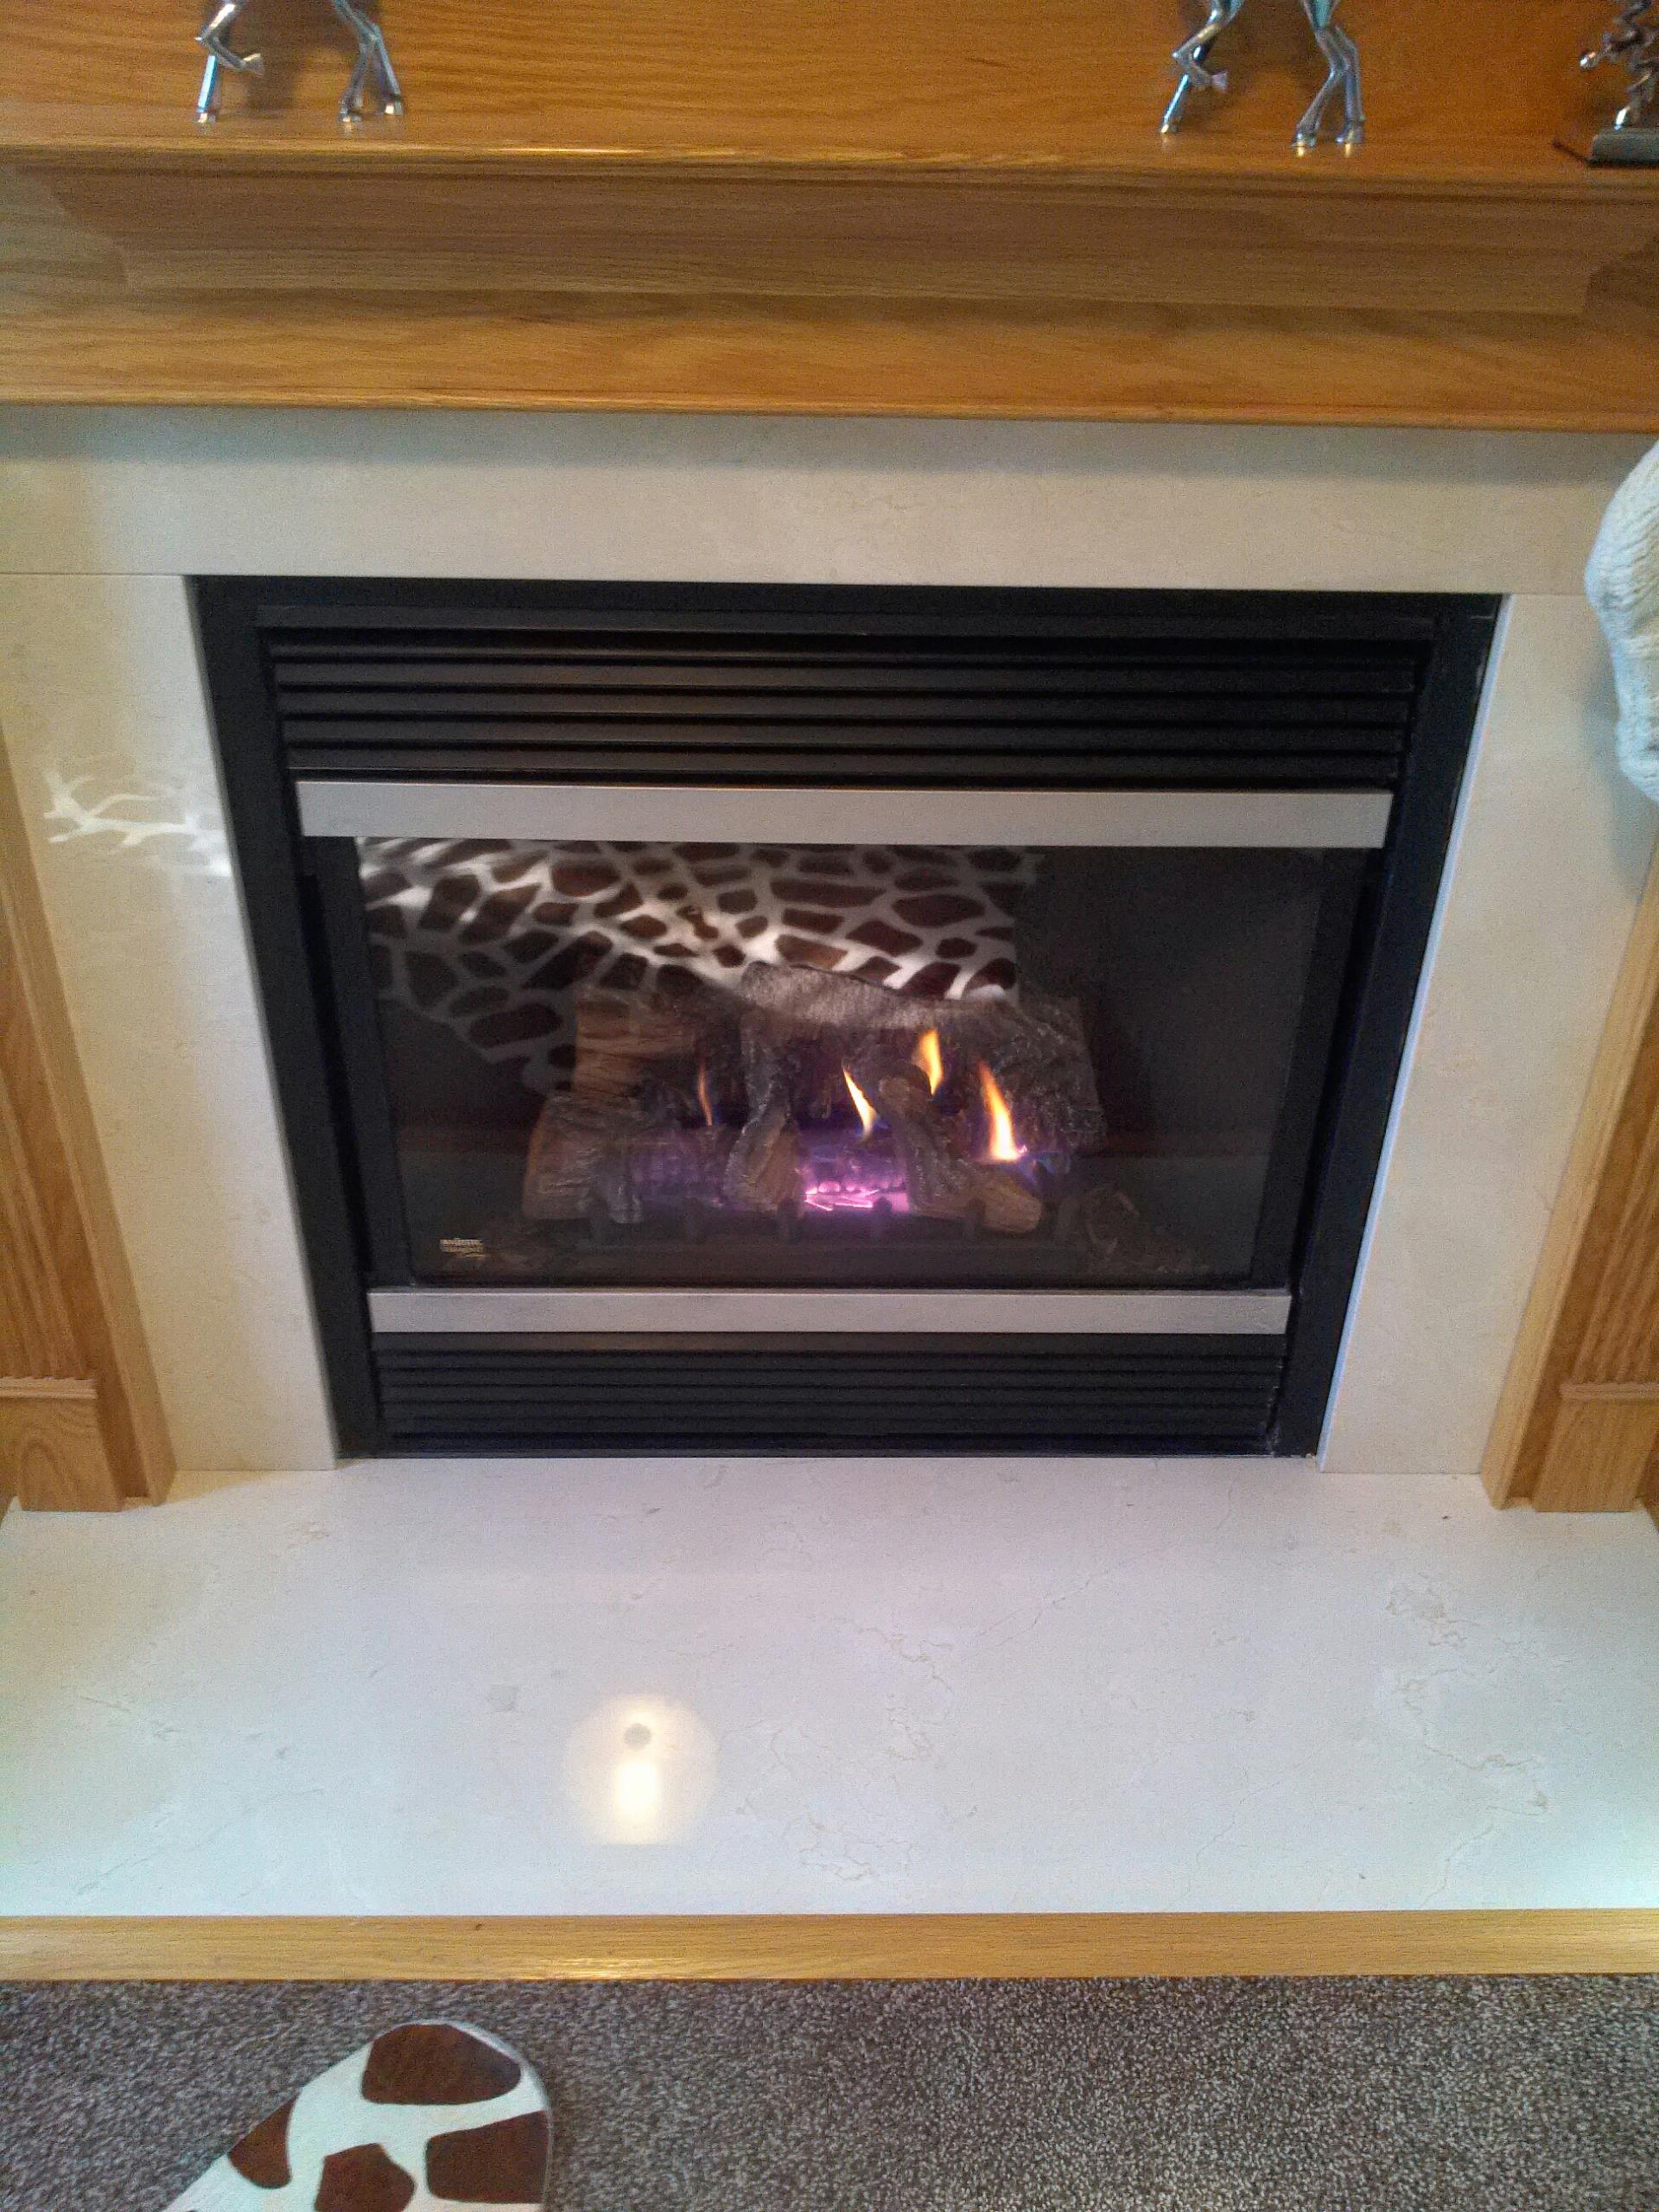 Gambrills, MD - Gambrills Maryland Mendota gas fireplace insert & gas logs installation repair service call.